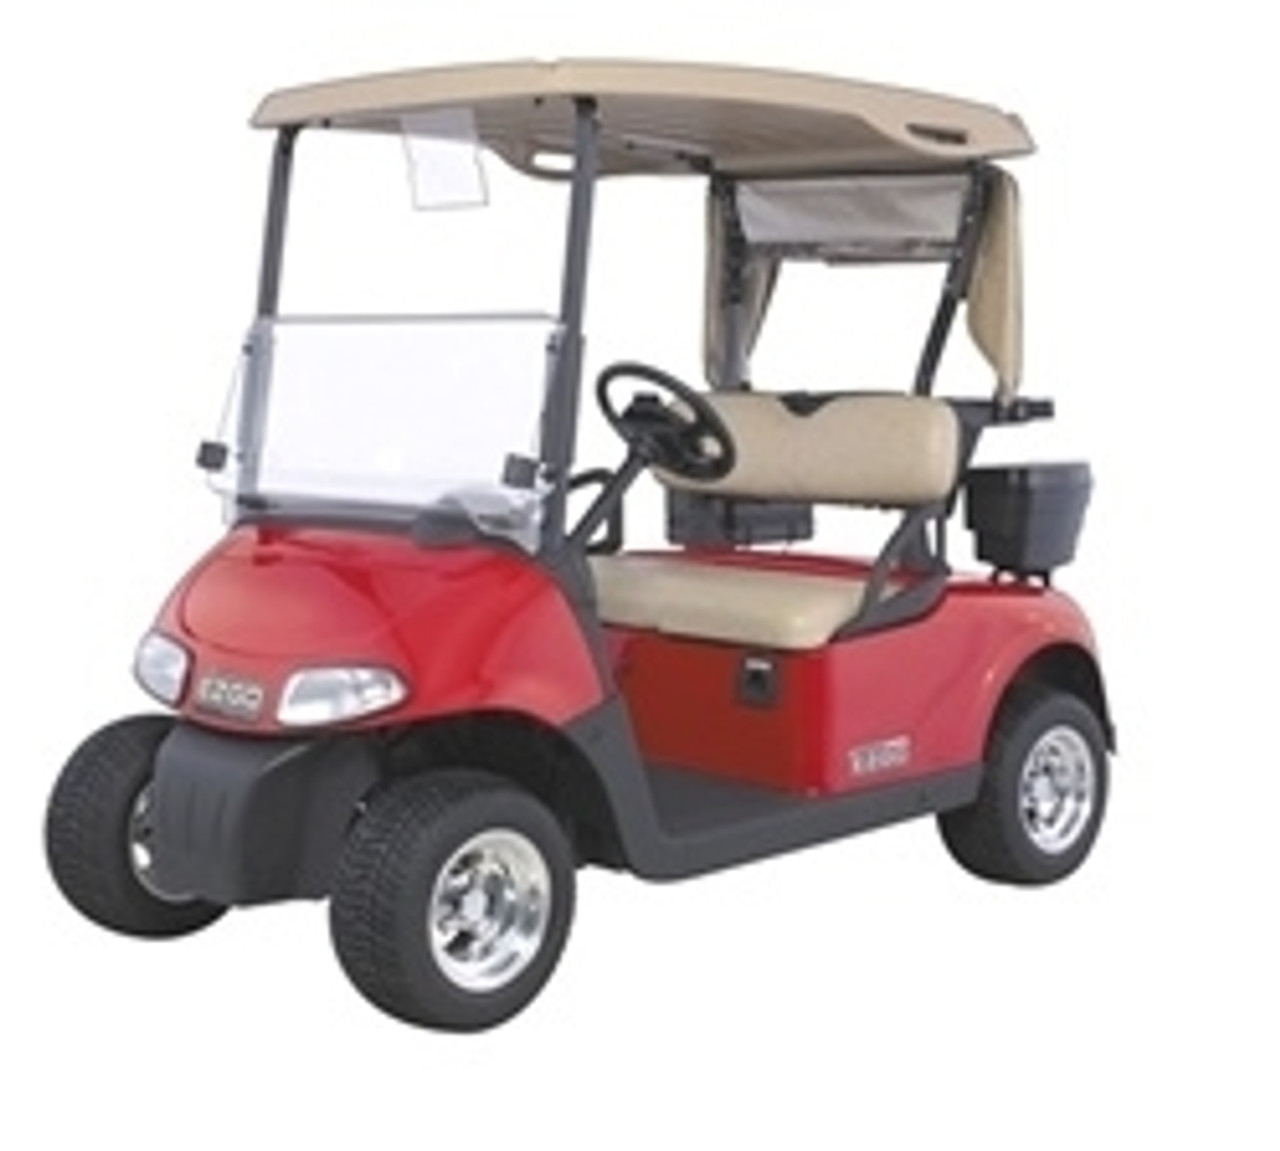 EZGO Golf Cart Tune Up Kits